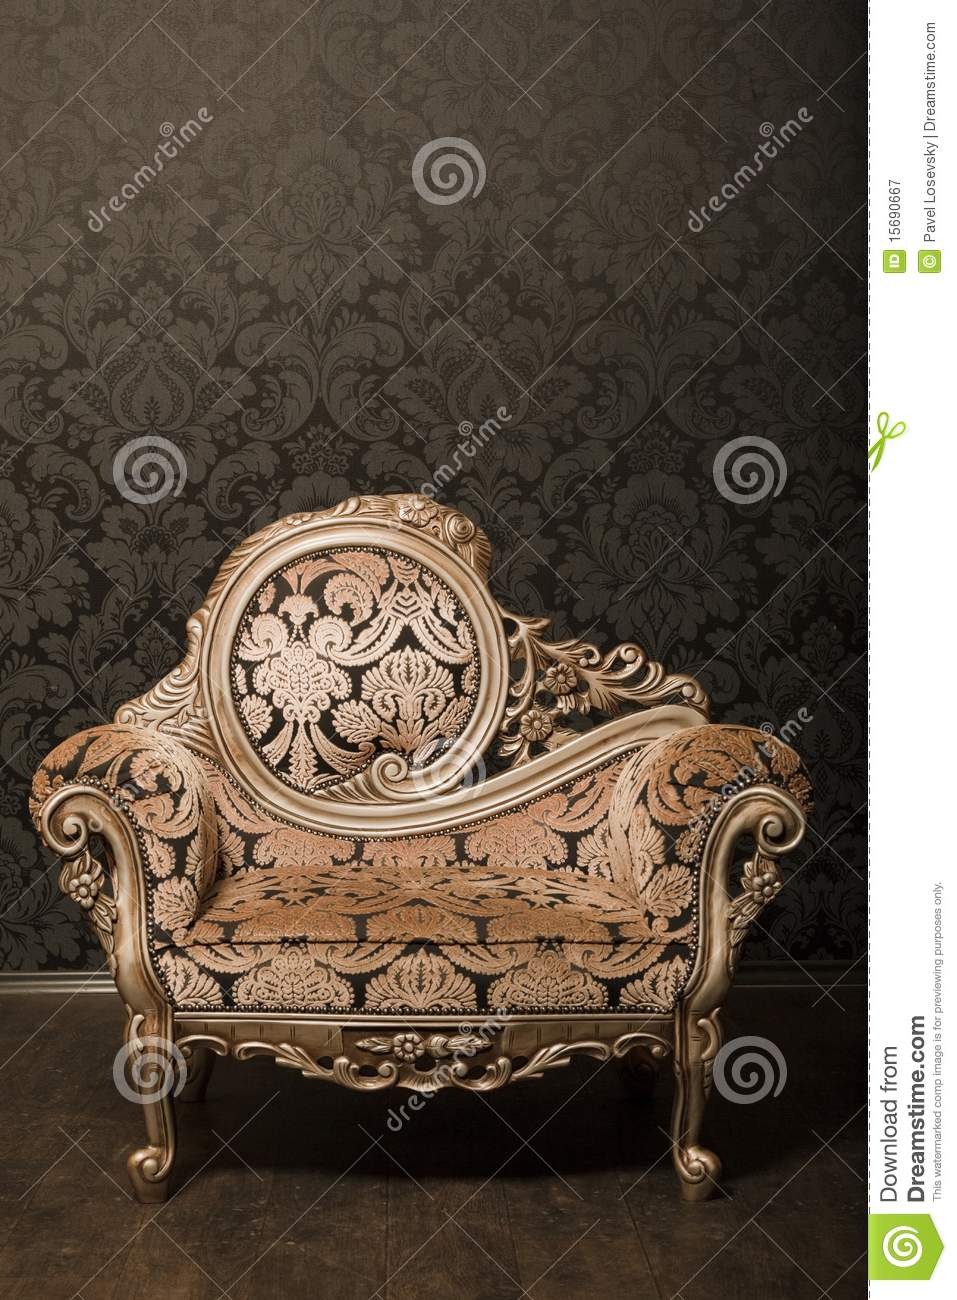 Vintage Chair With Gold Accents Beside The Wall Royalty